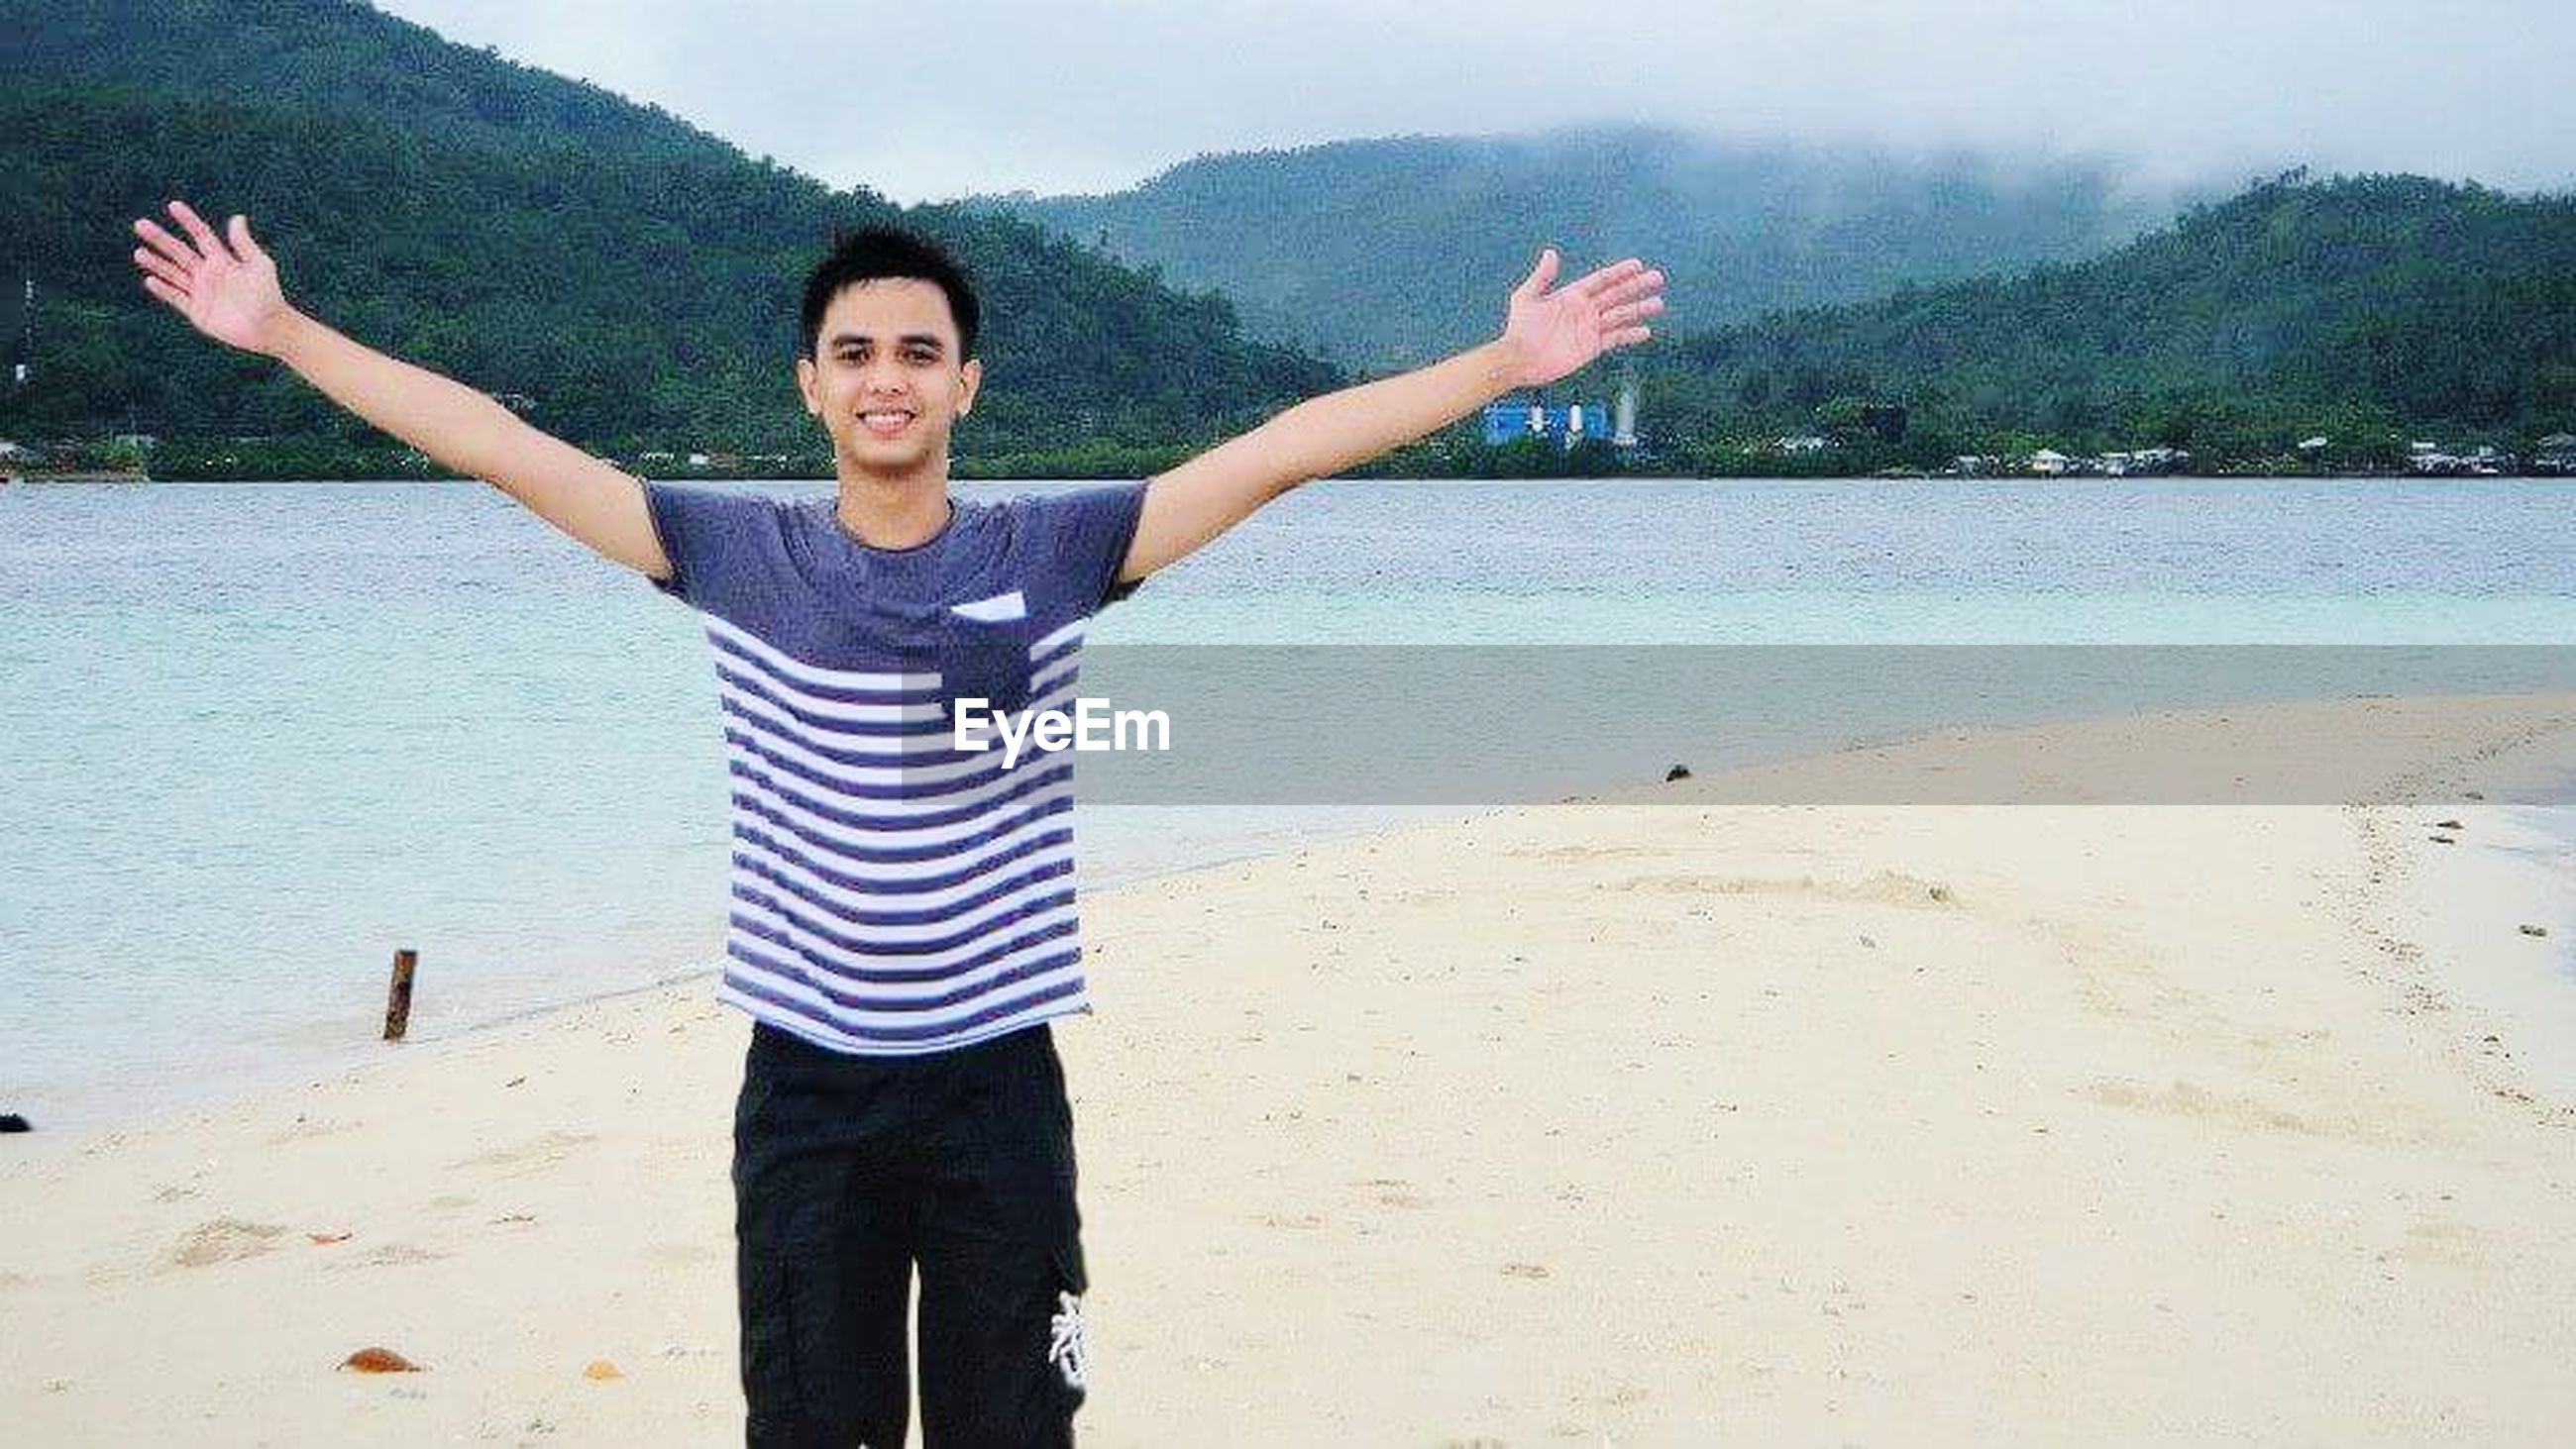 arms raised, human arm, happiness, smiling, one person, looking at camera, day, standing, outdoors, real people, casual clothing, water, young adult, enjoyment, portrait, human body part, nature, leisure activity, vacations, beach, young women, cheerful, beautiful woman, lifestyles, tree, one woman only, only women, beauty in nature, sky, adult, adults only, people